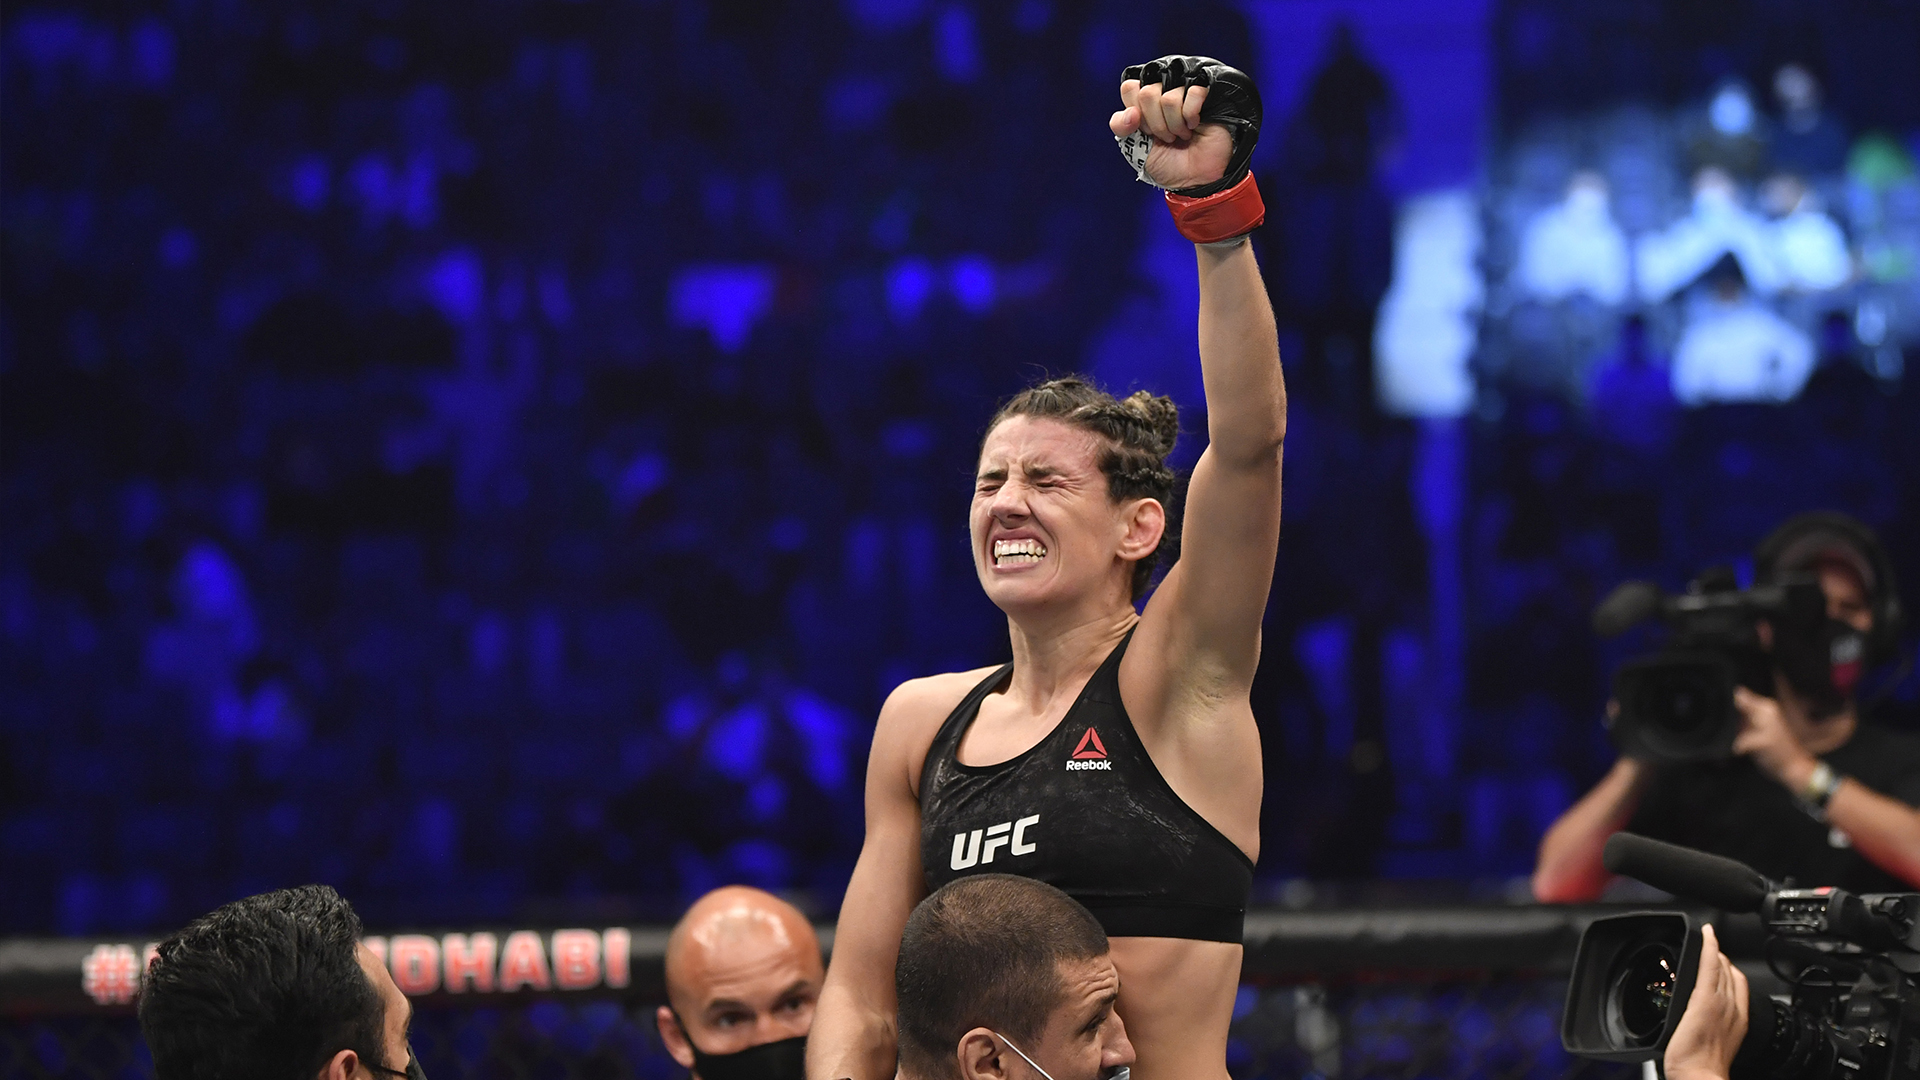 Marina Rodriguez of Brazil reacts after her knockout victory over Amanda Ribas of Brazil in a strawweight fight during the UFC 257 event inside Etihad Arena on UFC Fight Island on January 23, 2021 in Abu Dhabi, United Arab Emirates. (Photo by Jeff Bottari/Zuffa LLC)